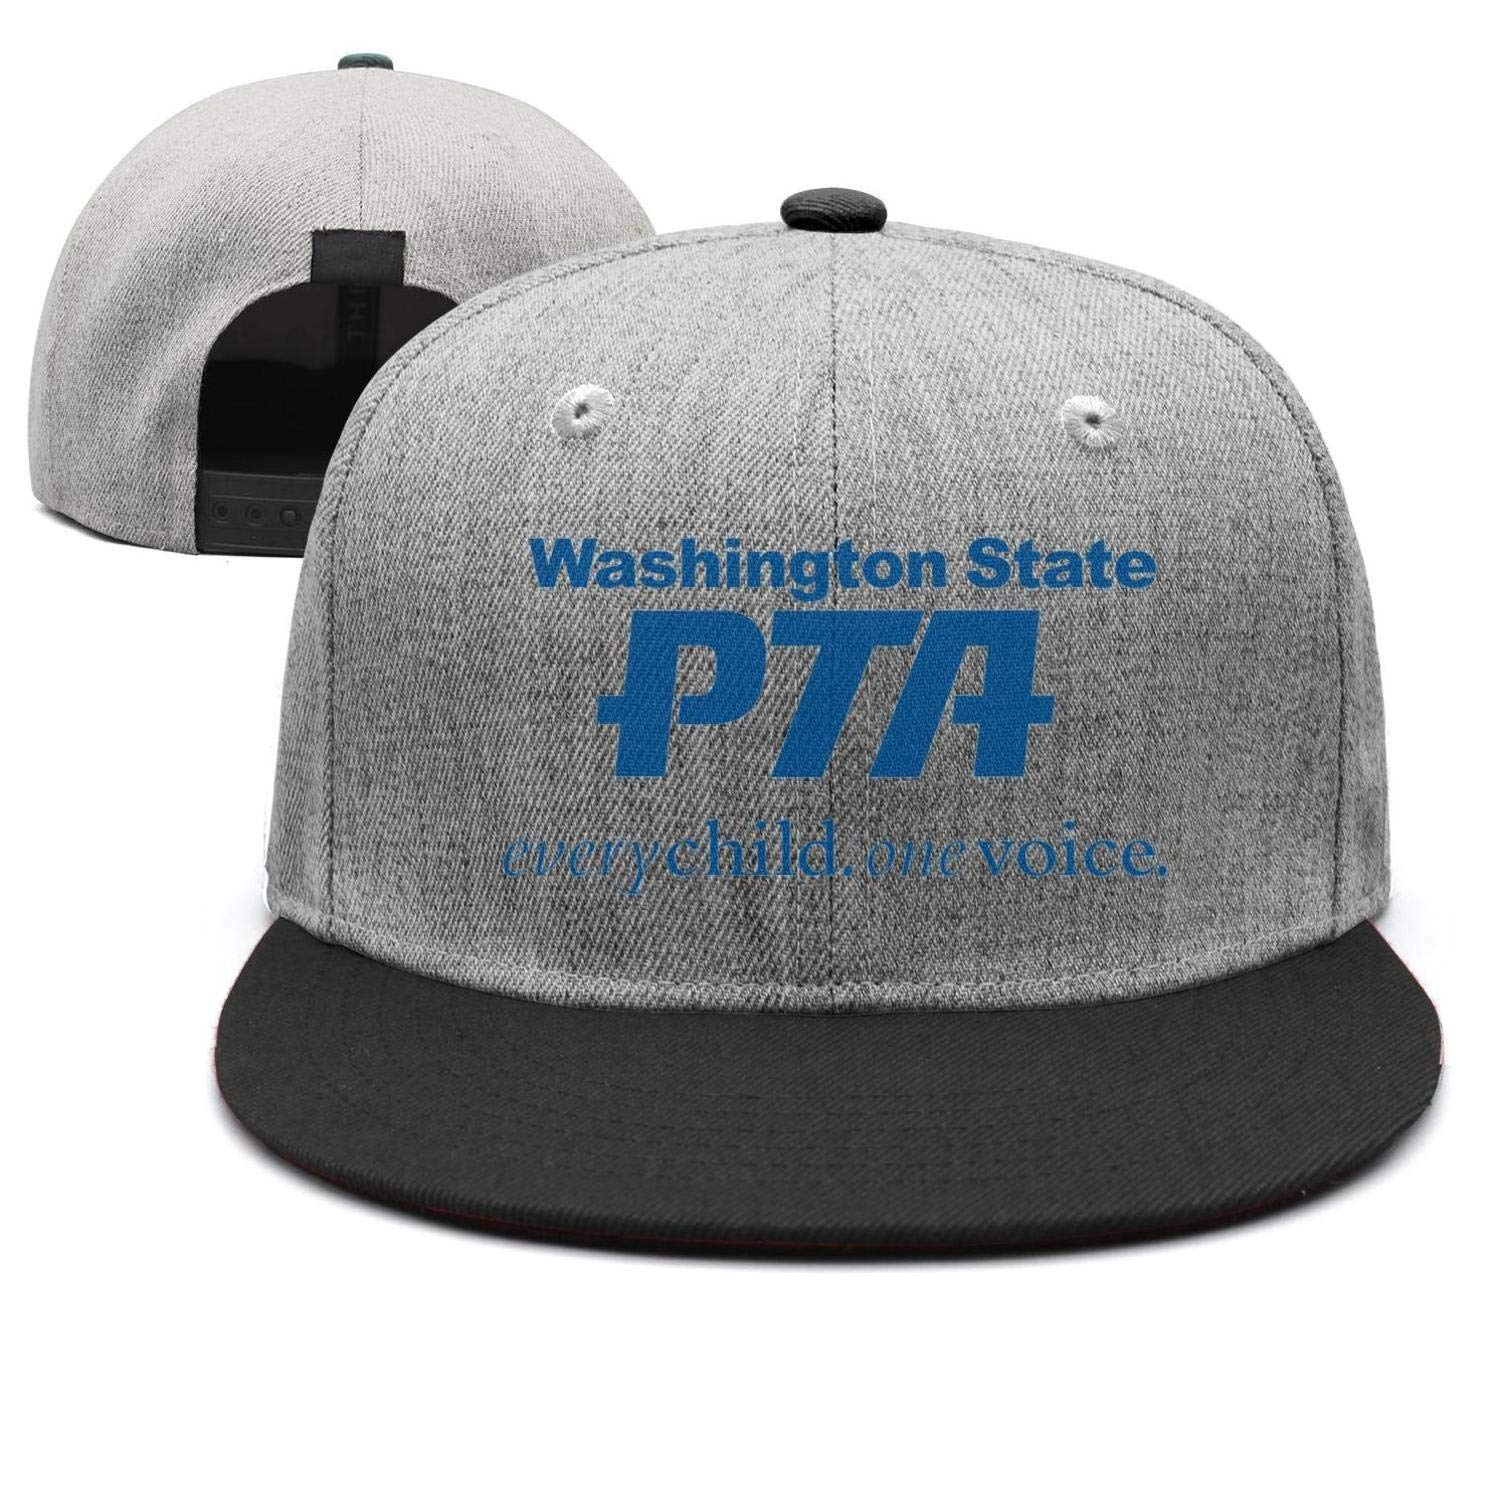 Cotton Casual Trucker hat Adjustable Fits Mesh Baseball Caps for Man and Woman smsdpmc Washington-Classic-State-PTA